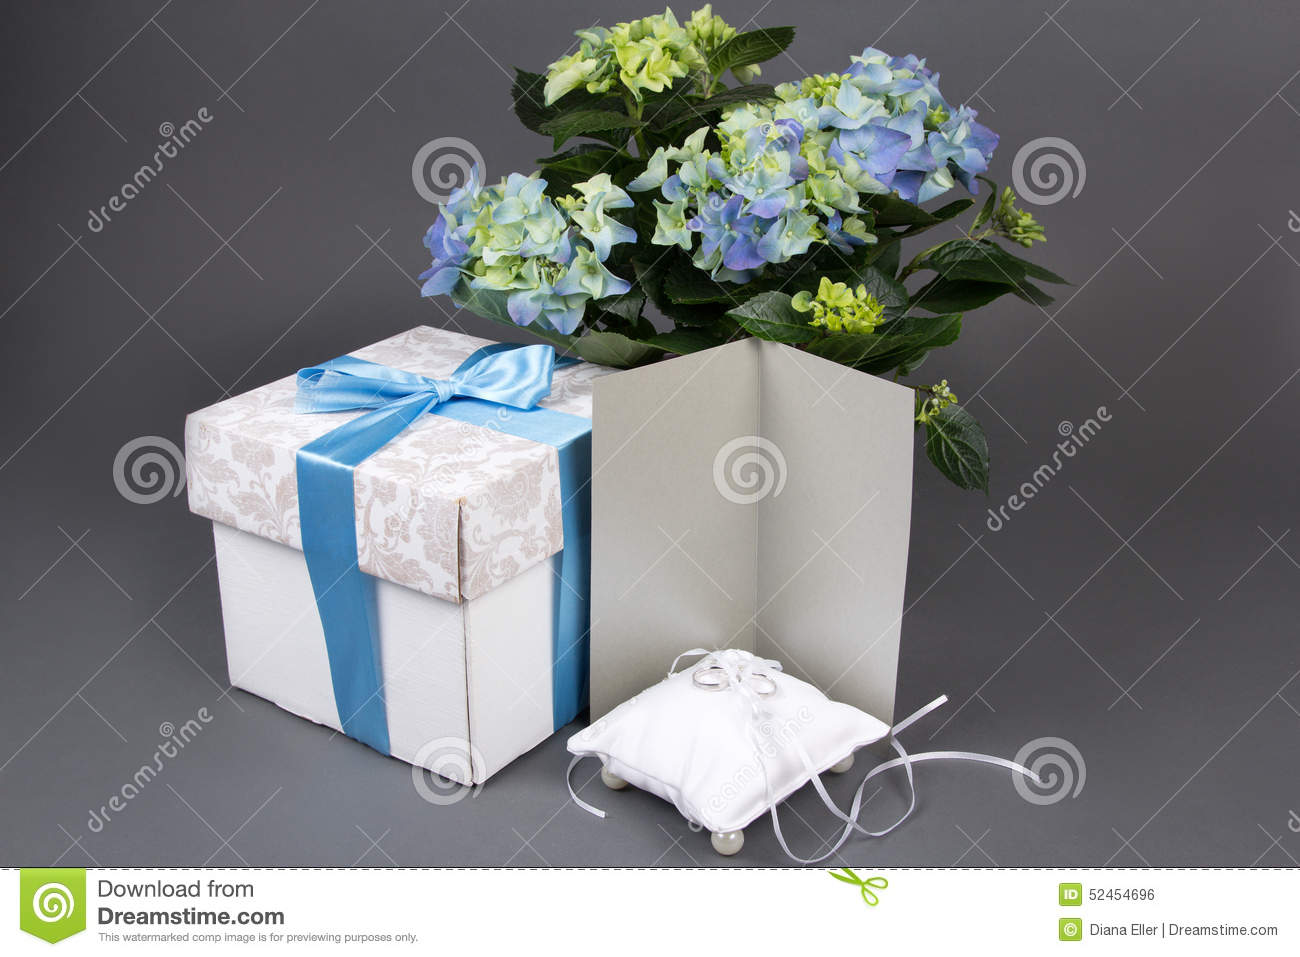 Blank Gift Card Bouquet Of Hydrangea Flowers Gift Box